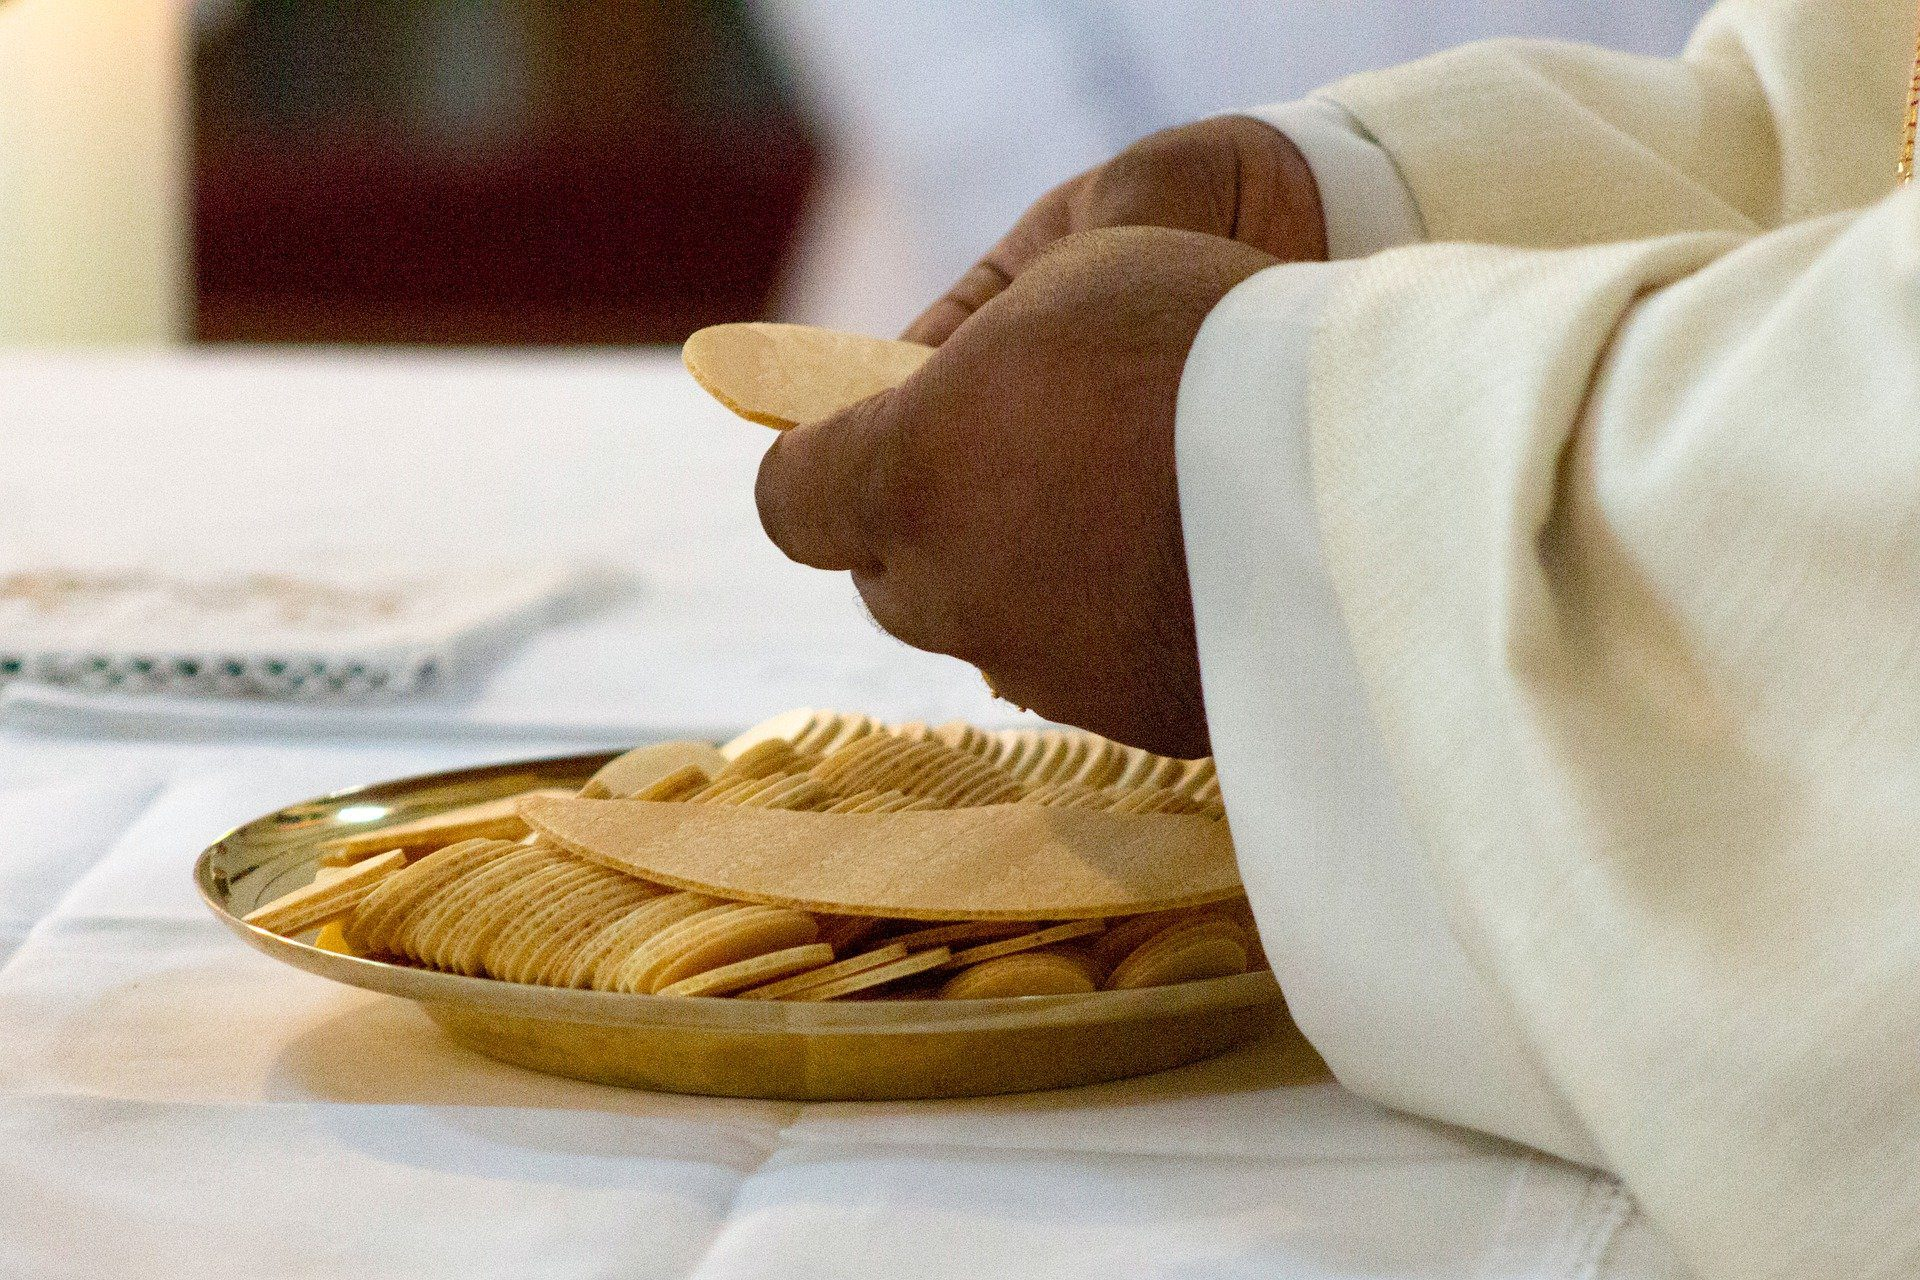 The Eucharist and Racial Reconciliation: One Body, Many Faces